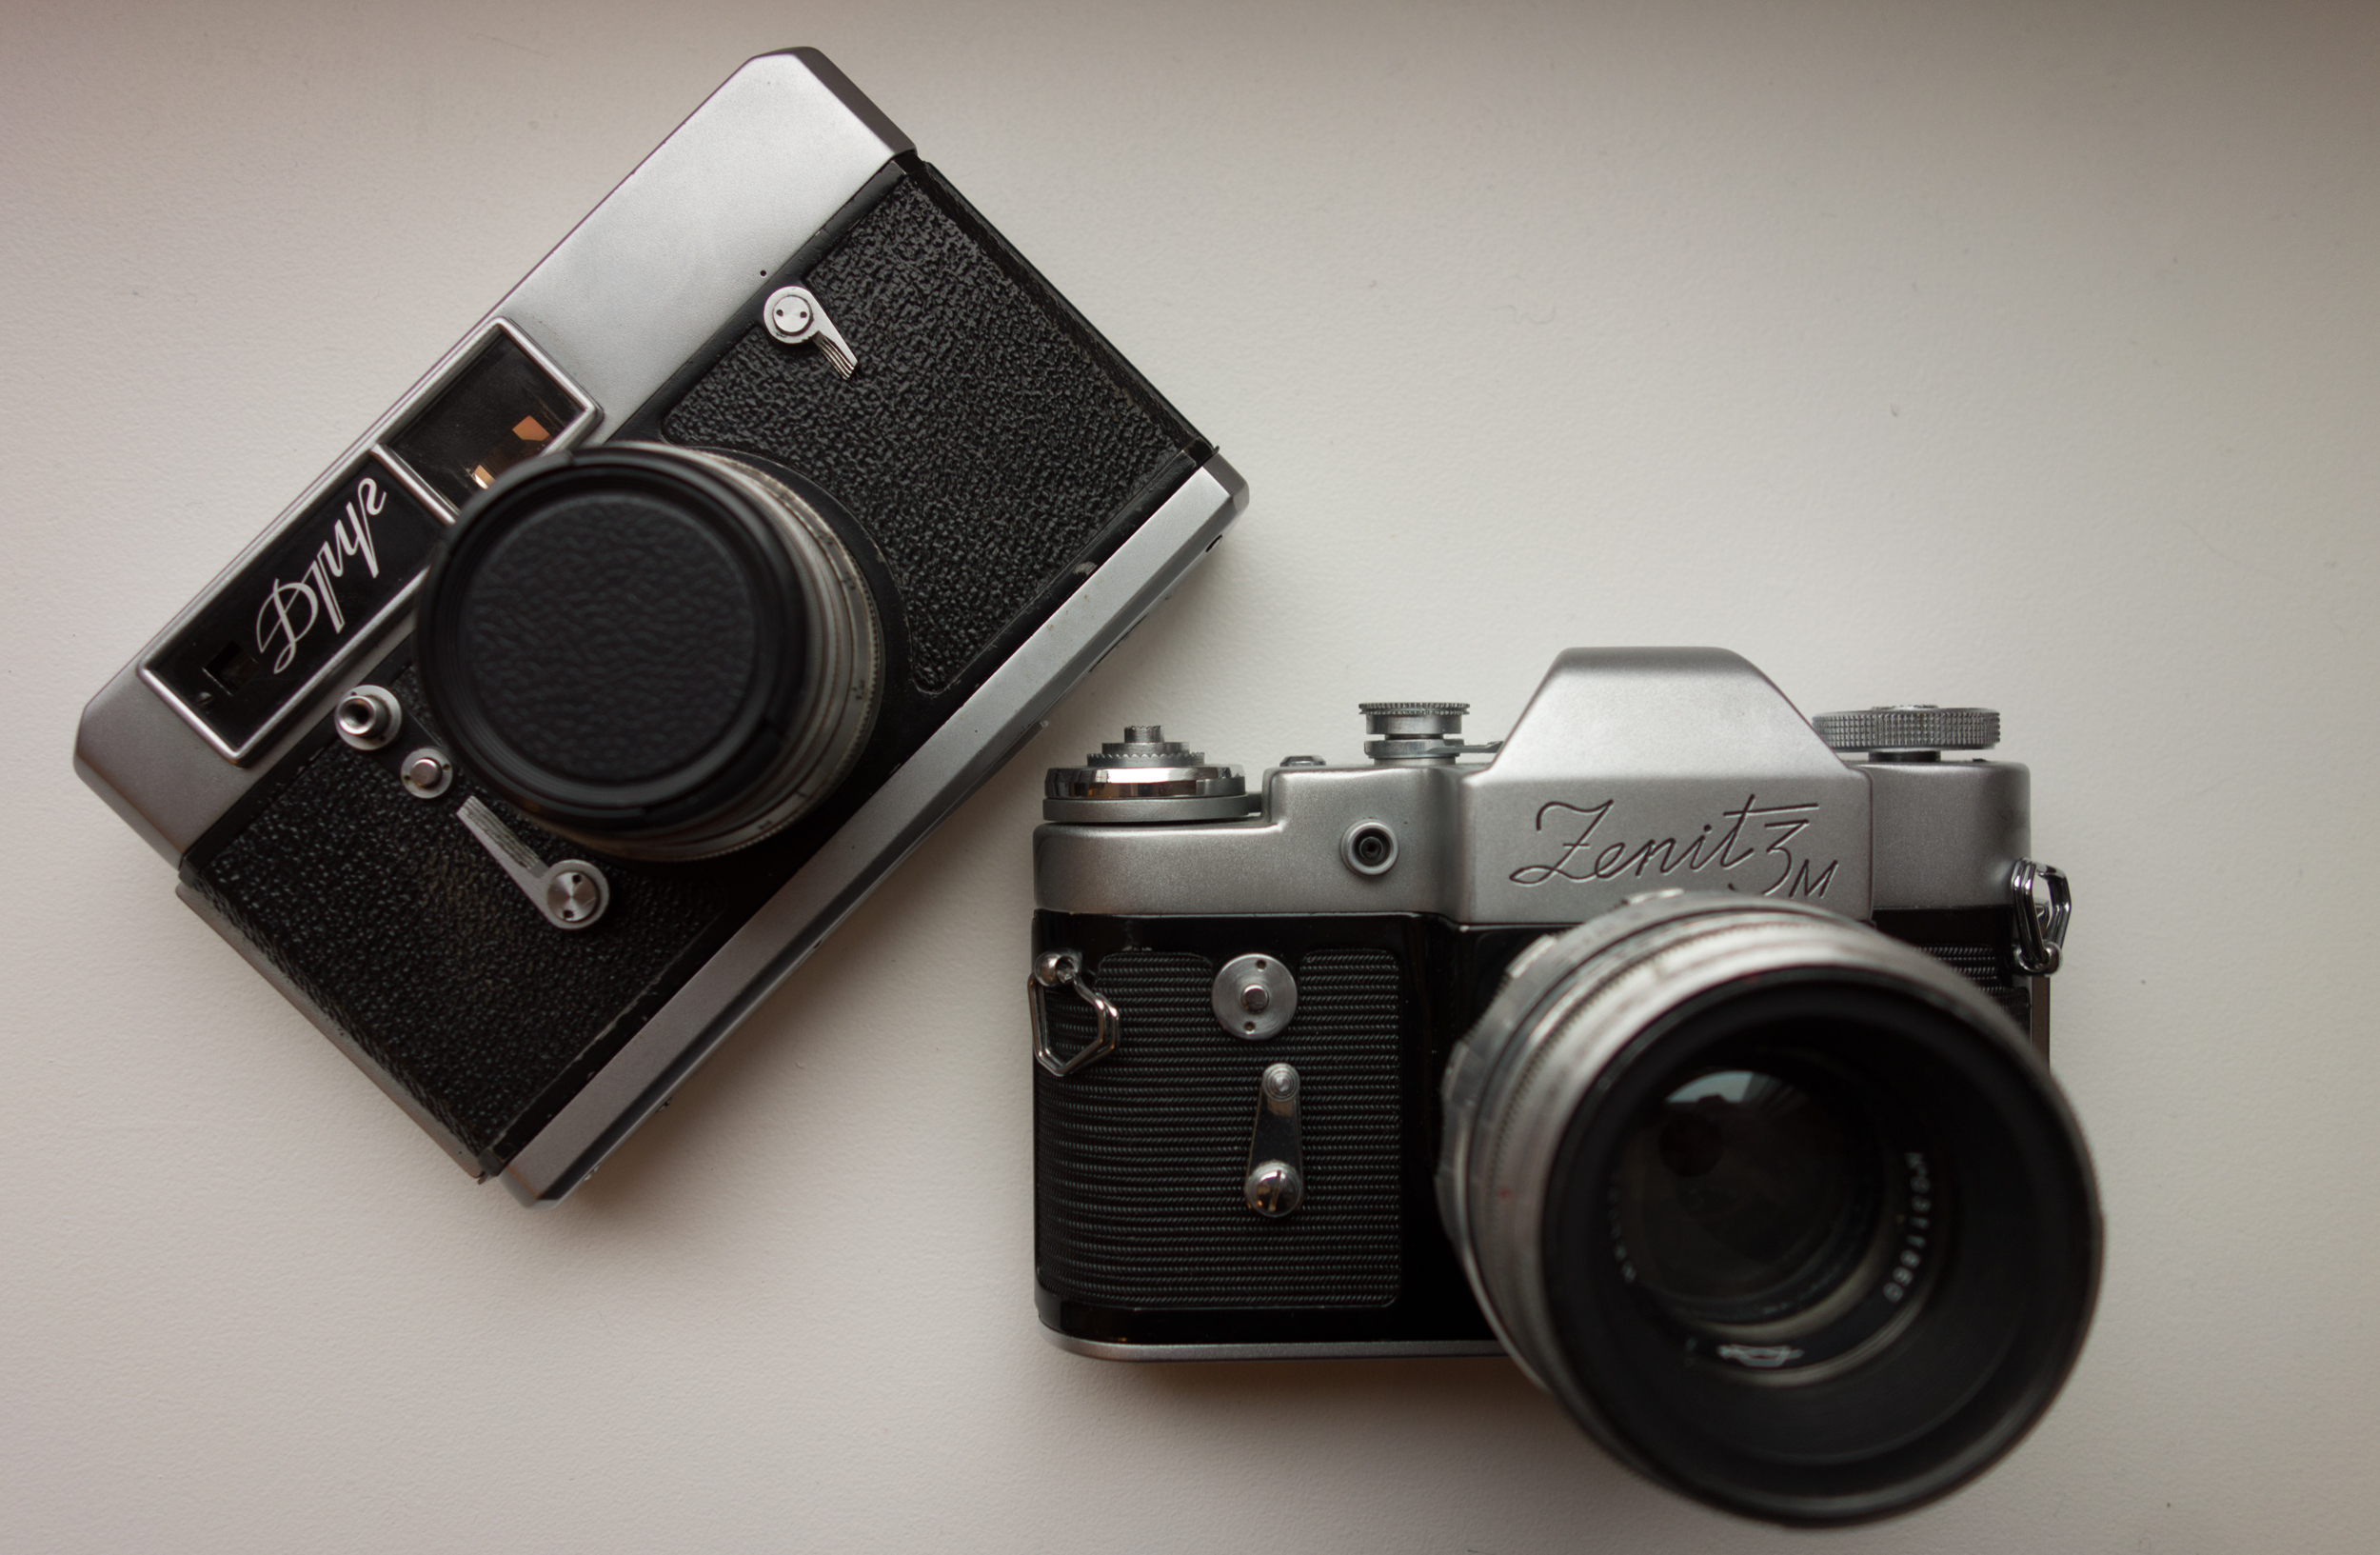 Drug and Zenit-3M cameras (Pic: Stephen Dowling)